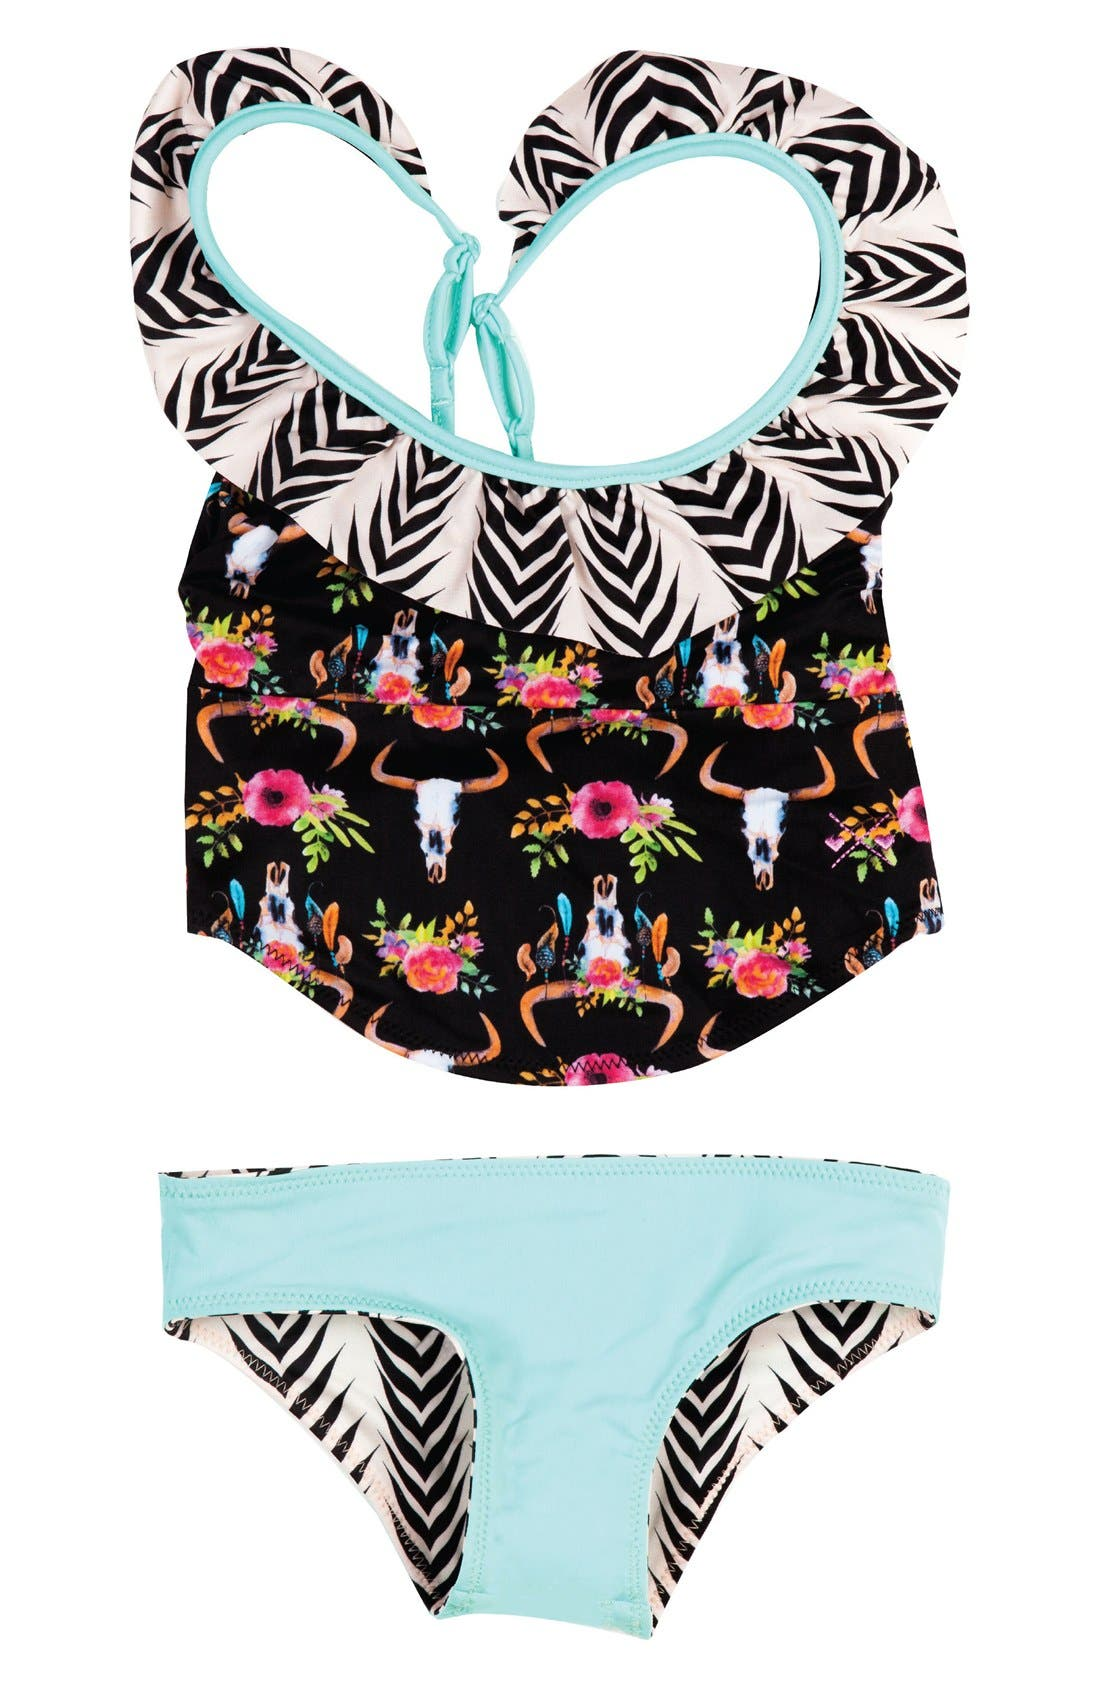 BOWIE JAMES Dreamcatcher Two-Piece Tankini Swimsuit